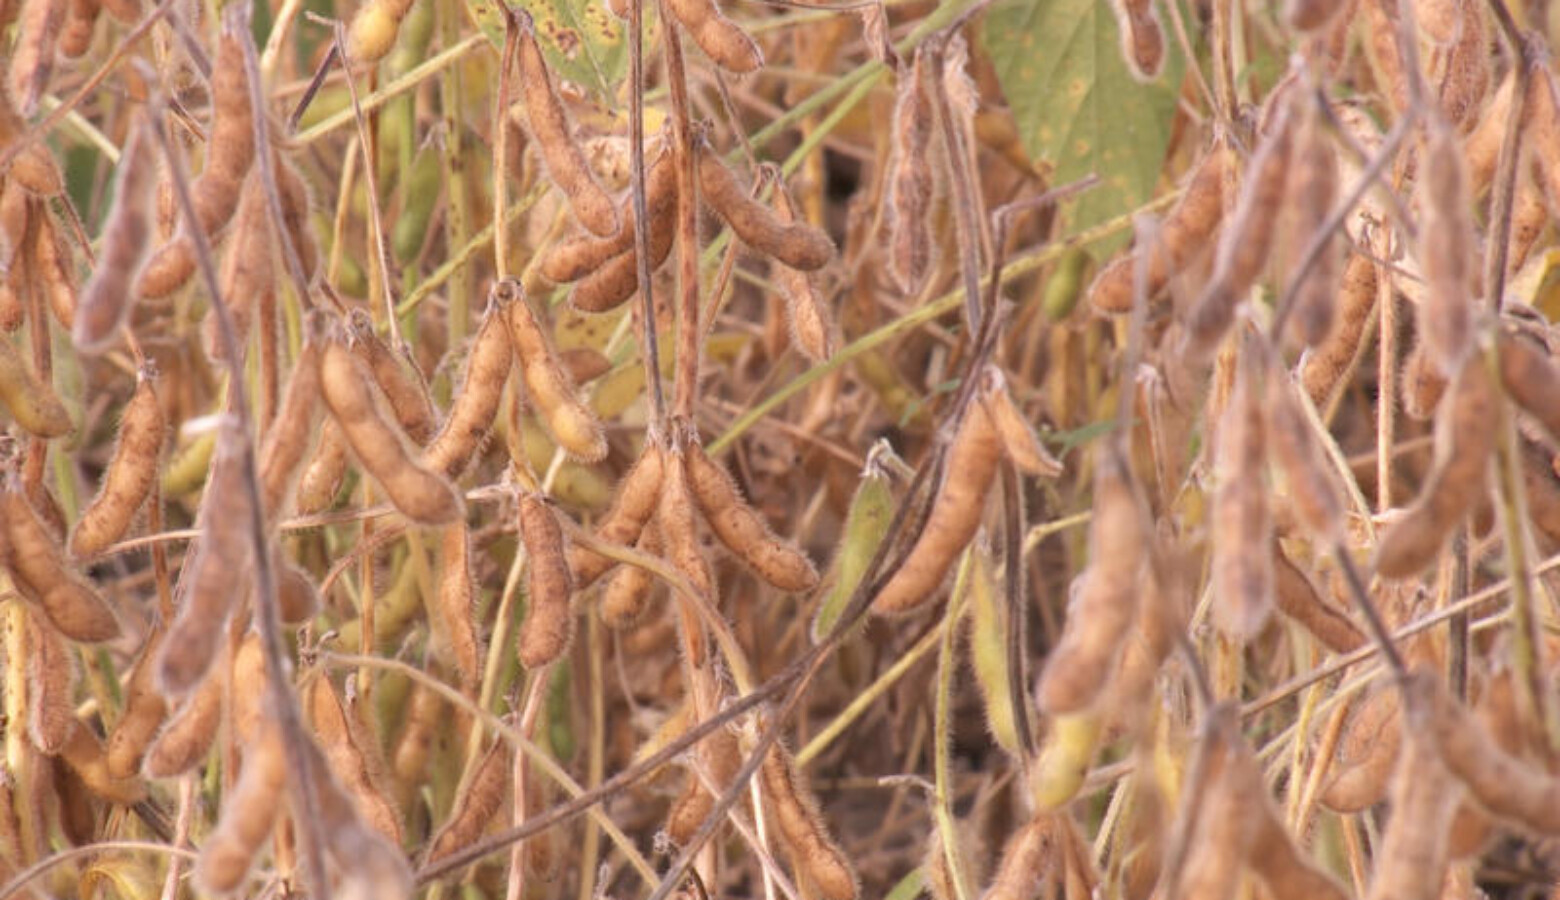 Dicamba can drift off of one soybean field that is resistant to the herbicide and damage a non-resistant field nearby. (FILE PHOTO: Seth Tackett/WTIU News)